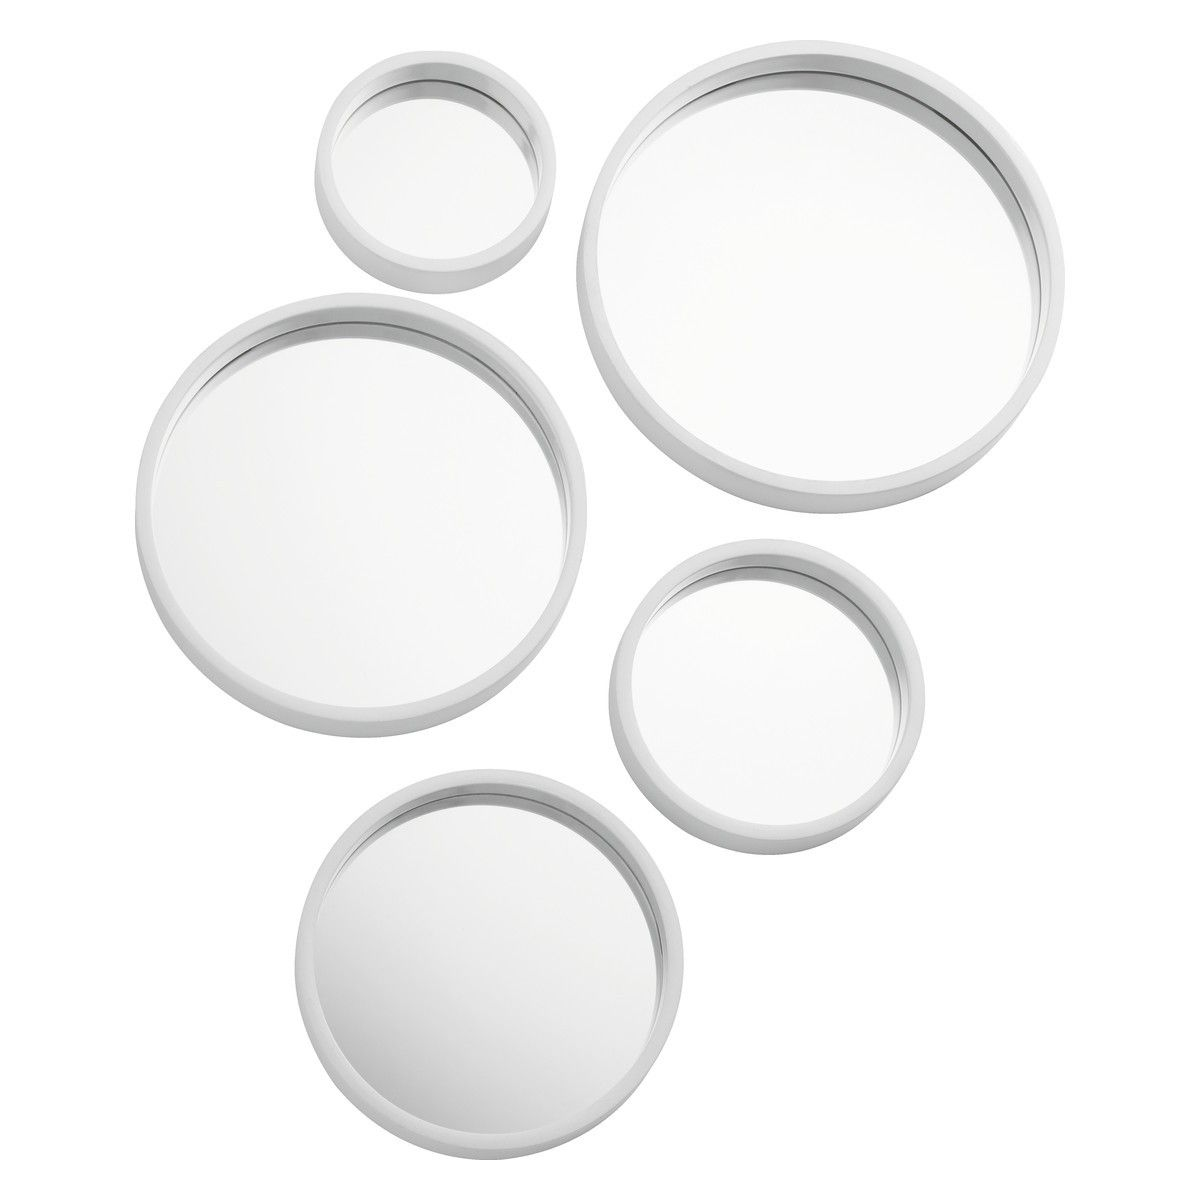 Mirror Mirror Mirror Mirror Set Of 5 White Round Mirrors Mirror Set Round Mirror Bathroom Round Mirrors